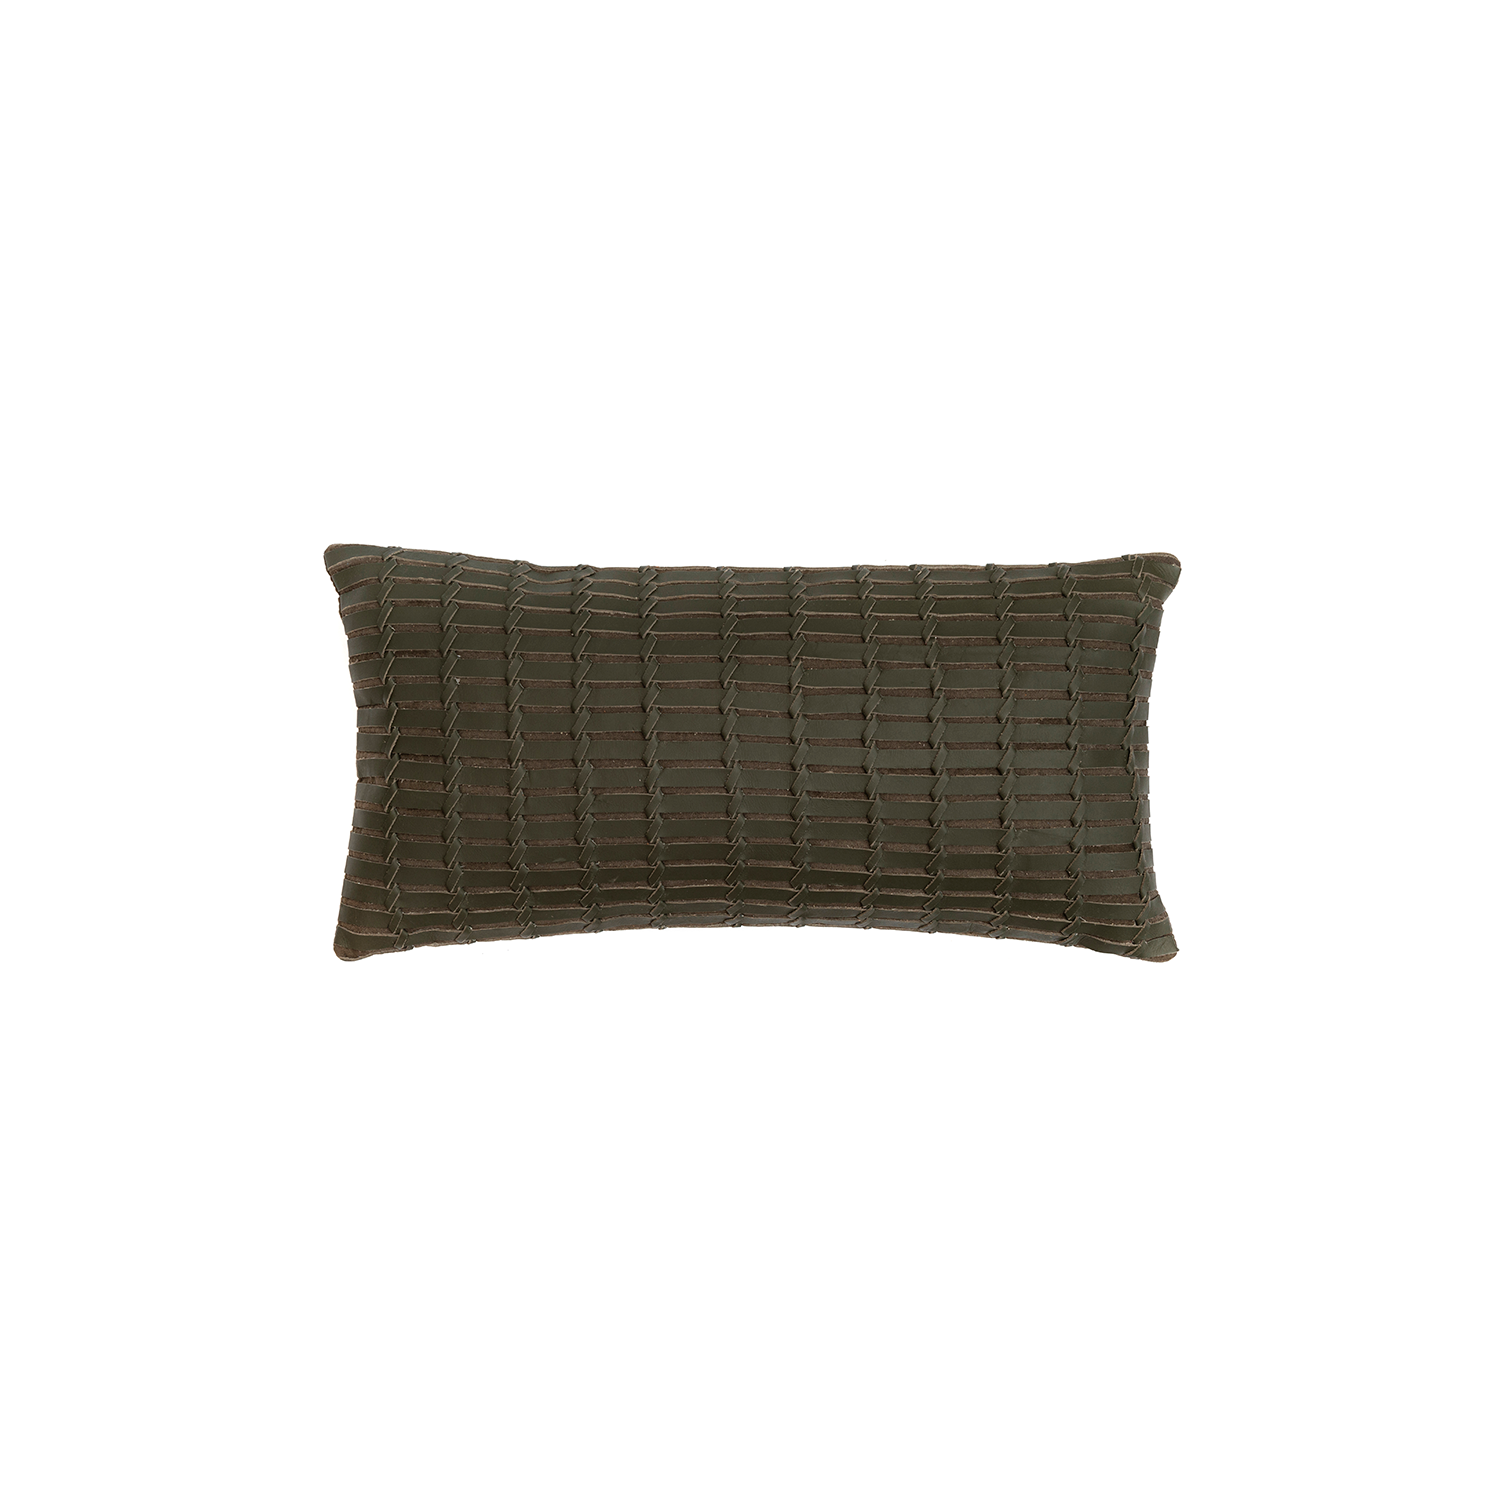 Maxi Indochina Woven Leather Cushion Small - The Maxi Indochina Woven Leather Cushion is designed to complement an ambient with a natural and sophisticated feeling. This cushion style is available in pleated leather or pleated suede leather. Elisa Atheniense woven handmade leather cushions are specially manufactured in Brazil using an exclusive treated leather that brings the soft feel touch to every single piece.   The front panel is handwoven in leather and the back panel is 100% Pes, made in Brazil.  The inner cushion is available in Hollow Fibre and European Duck Feathers, made in the UK.  Please enquire for more information and see colour chart for reference. | Matter of Stuff